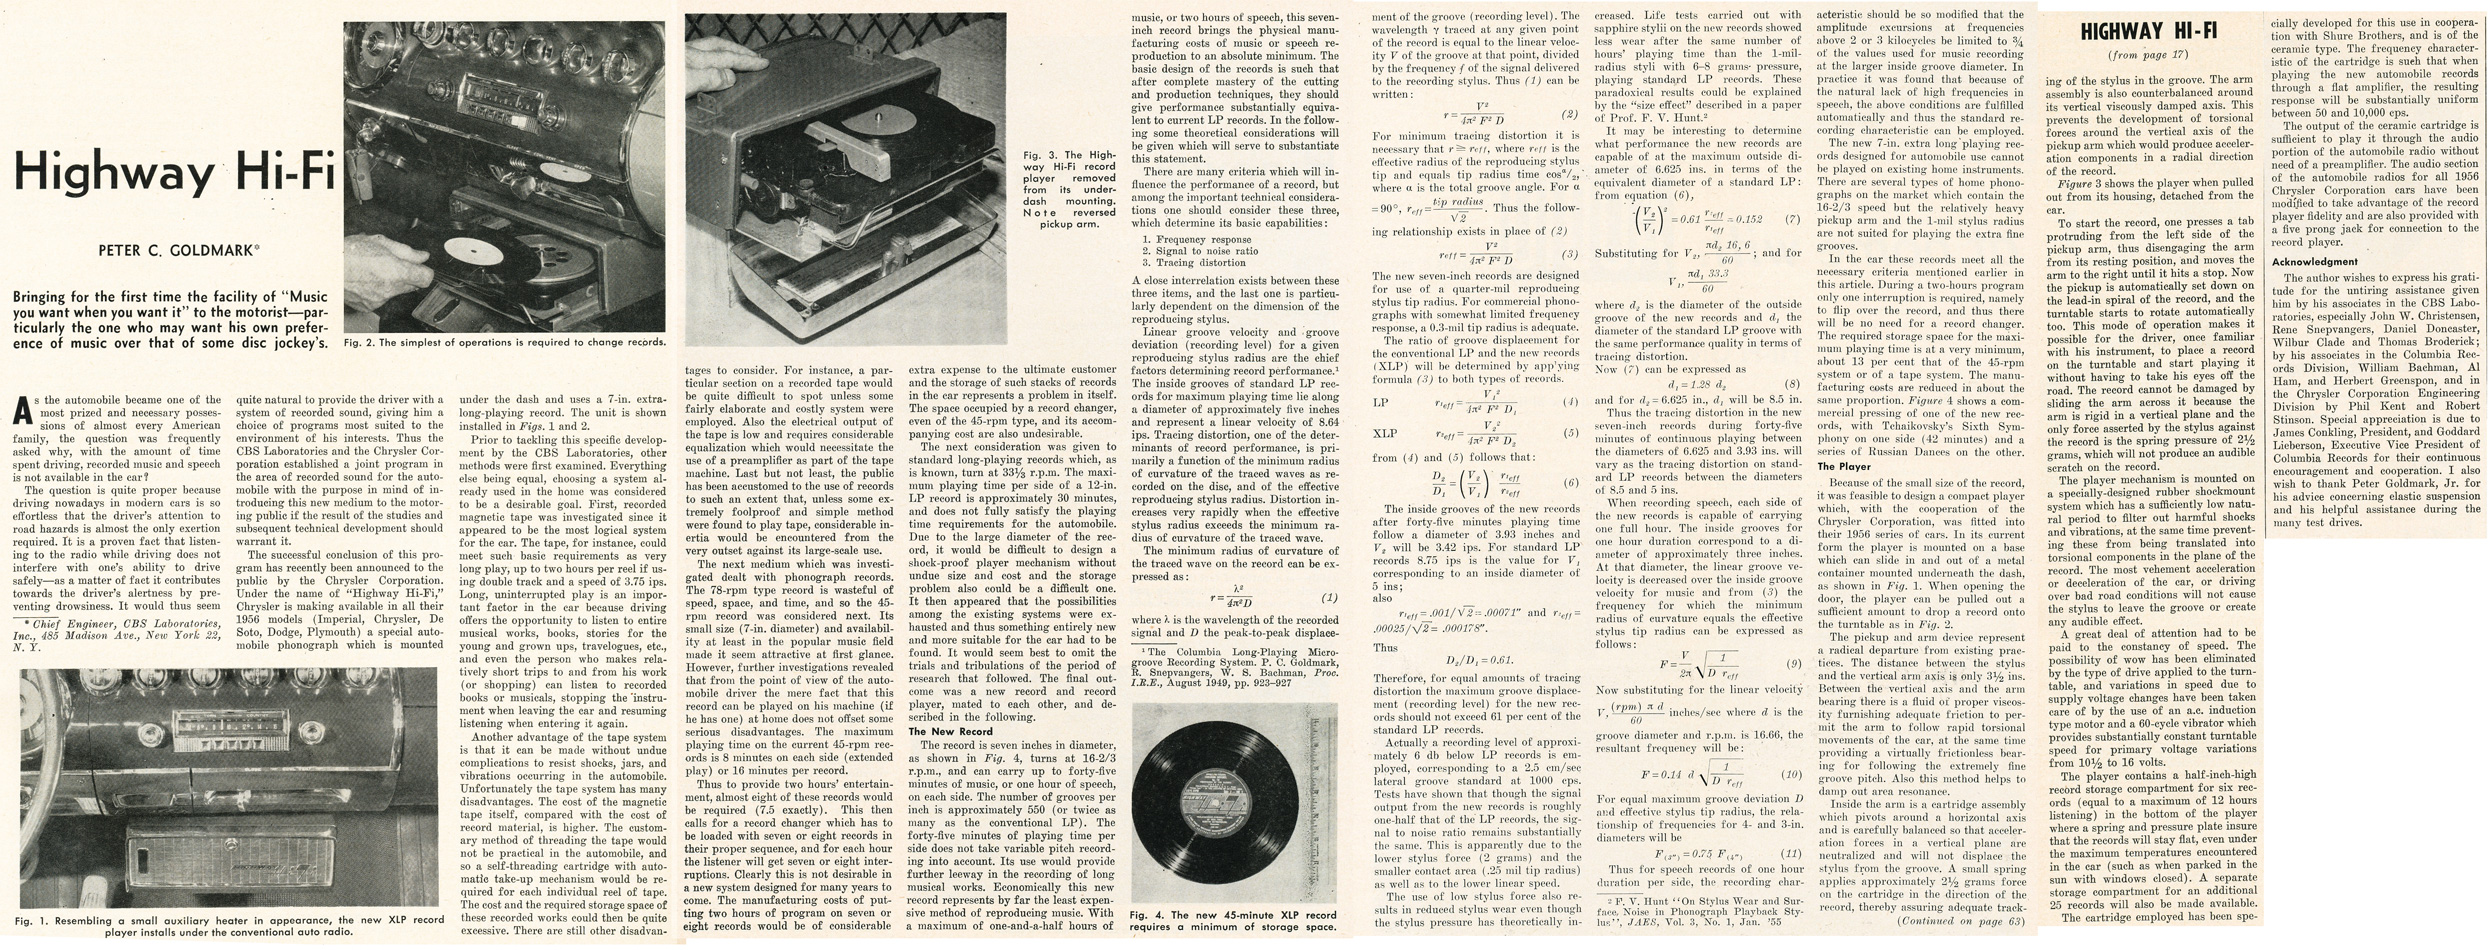 1955 article about an automobile record playing system